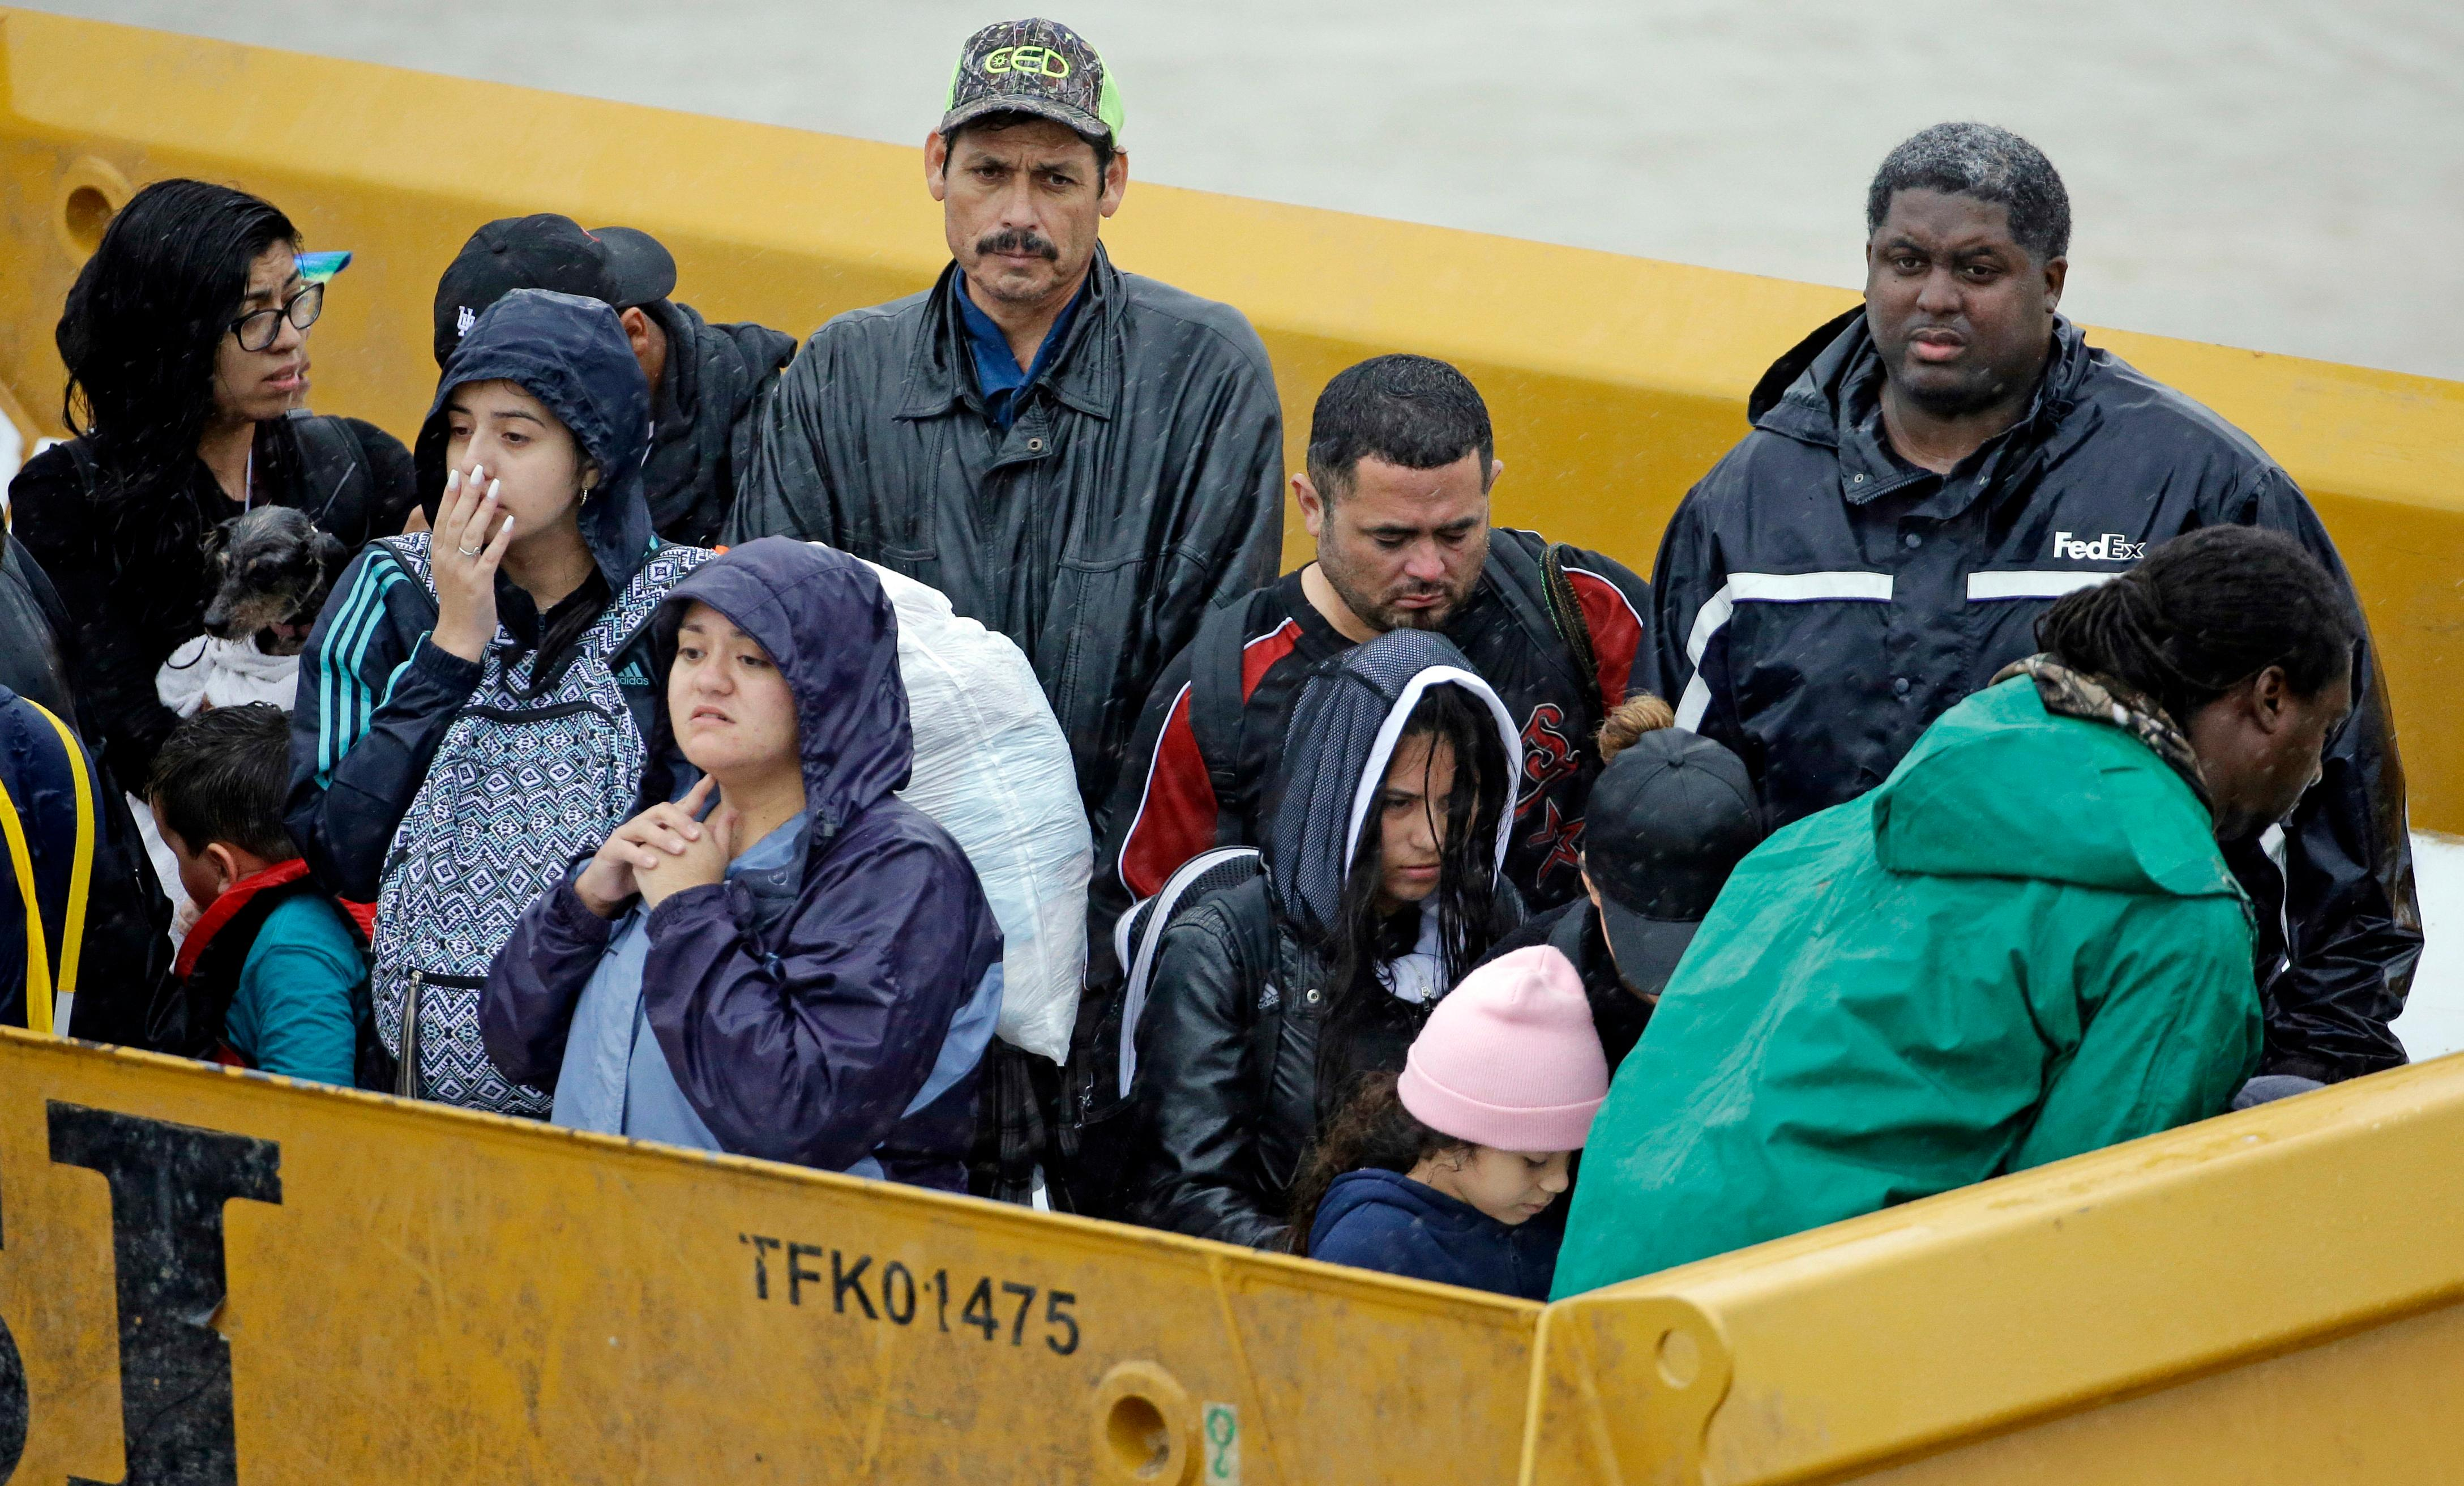 Flood victims wait to unload from the back of a heavy duty truck after being evacuated from their homes as floodwaters from Tropical Storm Harvey rise Monday, Aug. 28, 2017, in Houston. (AP Photo/David J. Phillip)